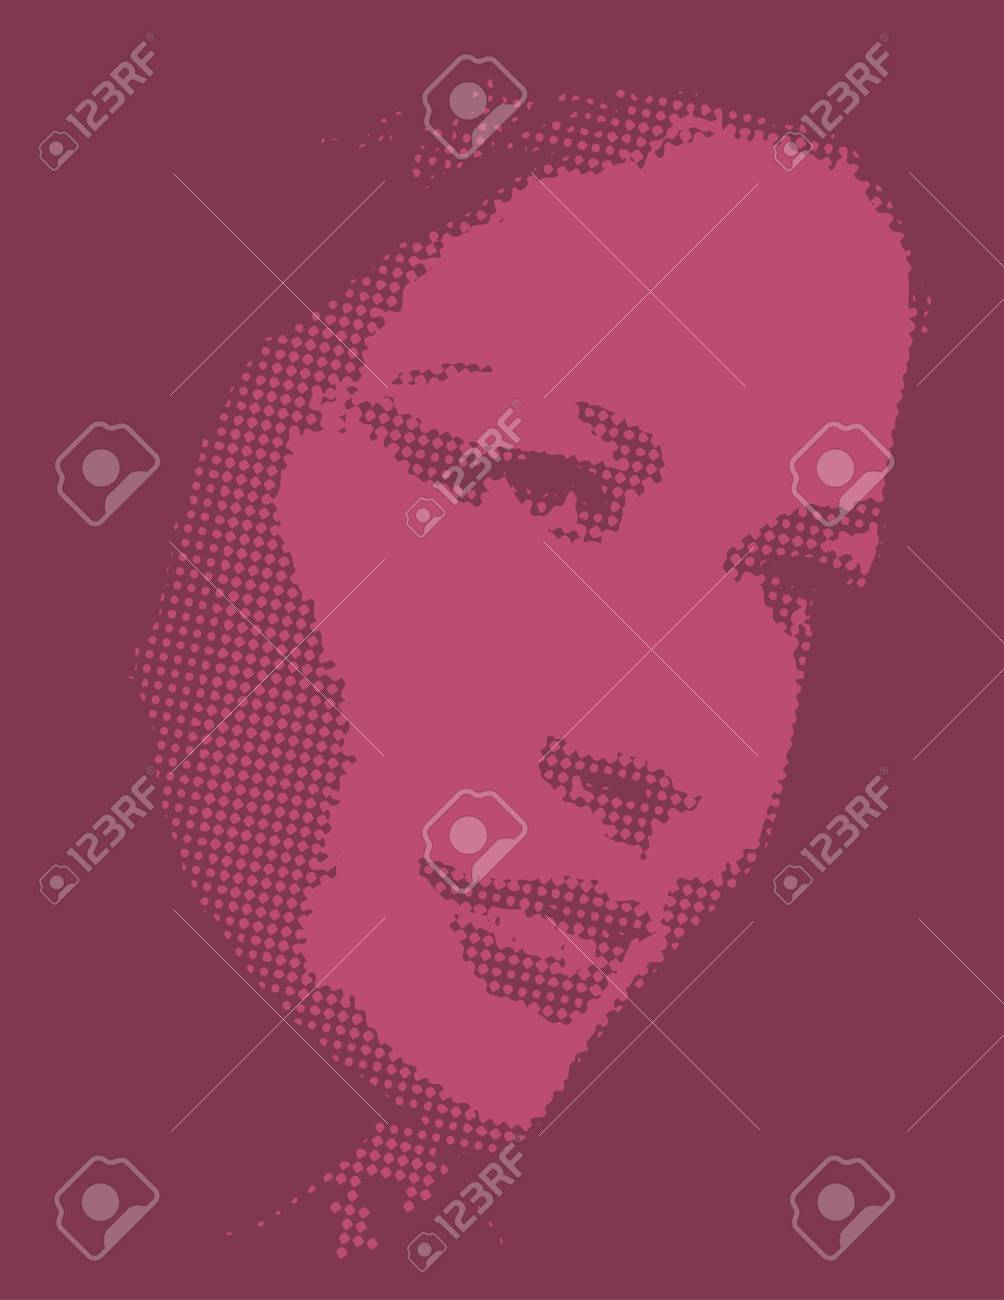 Woman face clip art design illustration for use in web and print Stock Photo - 885650